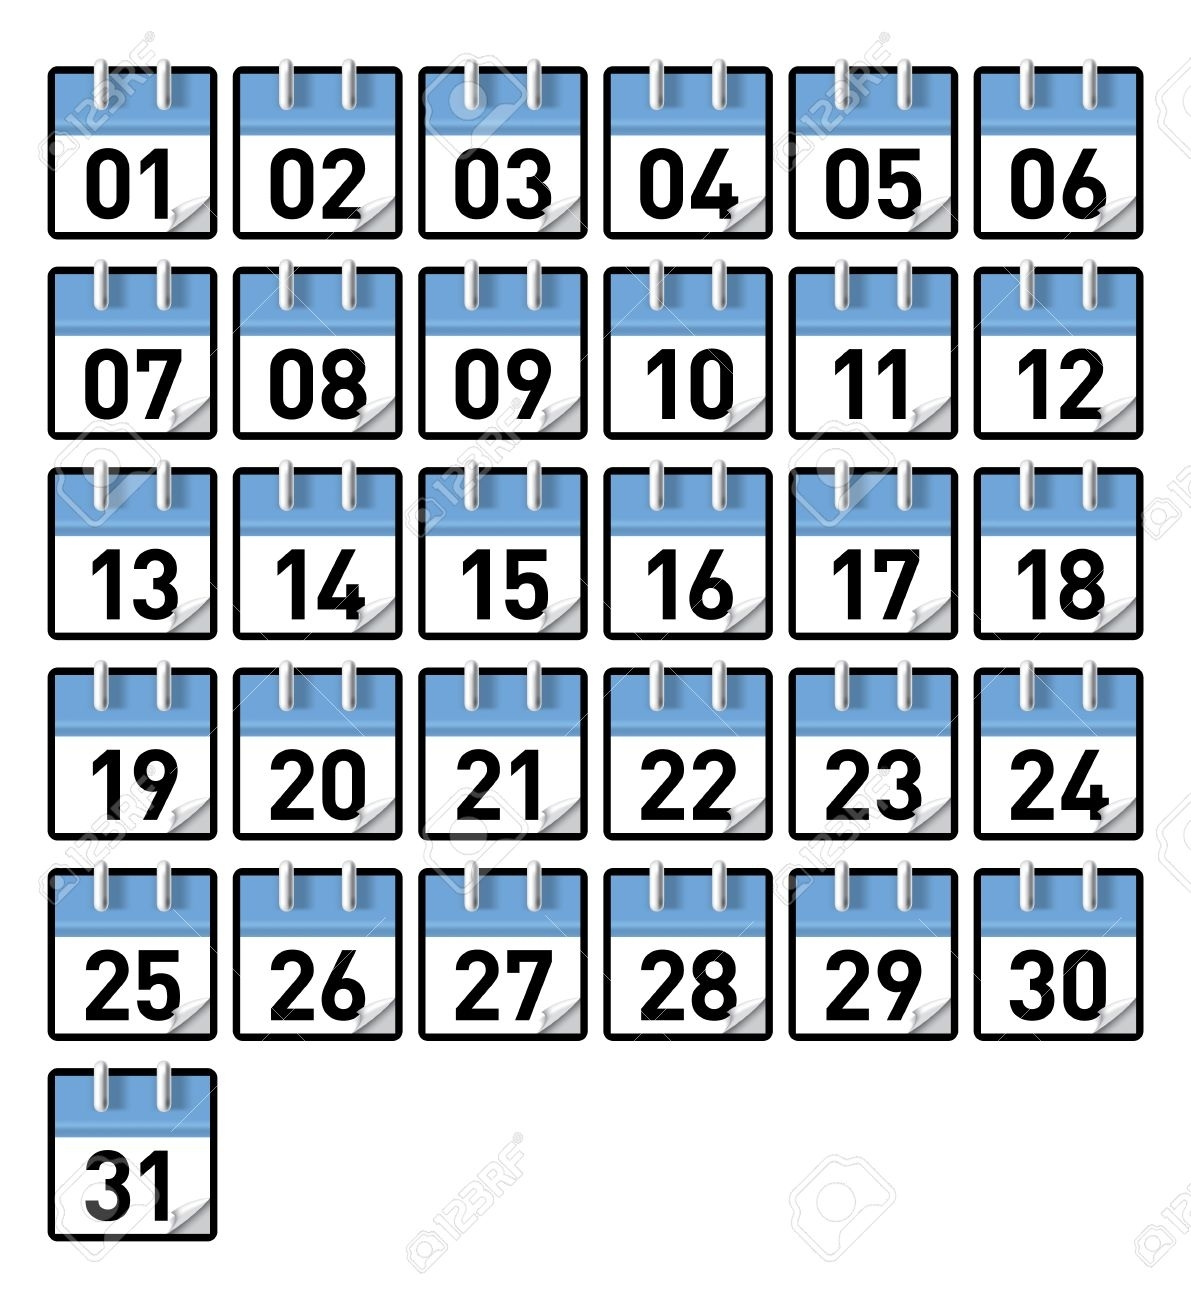 Small Generic Calendars For All 31 Days Of A Month Royalty Free inside Days Of The Month Images